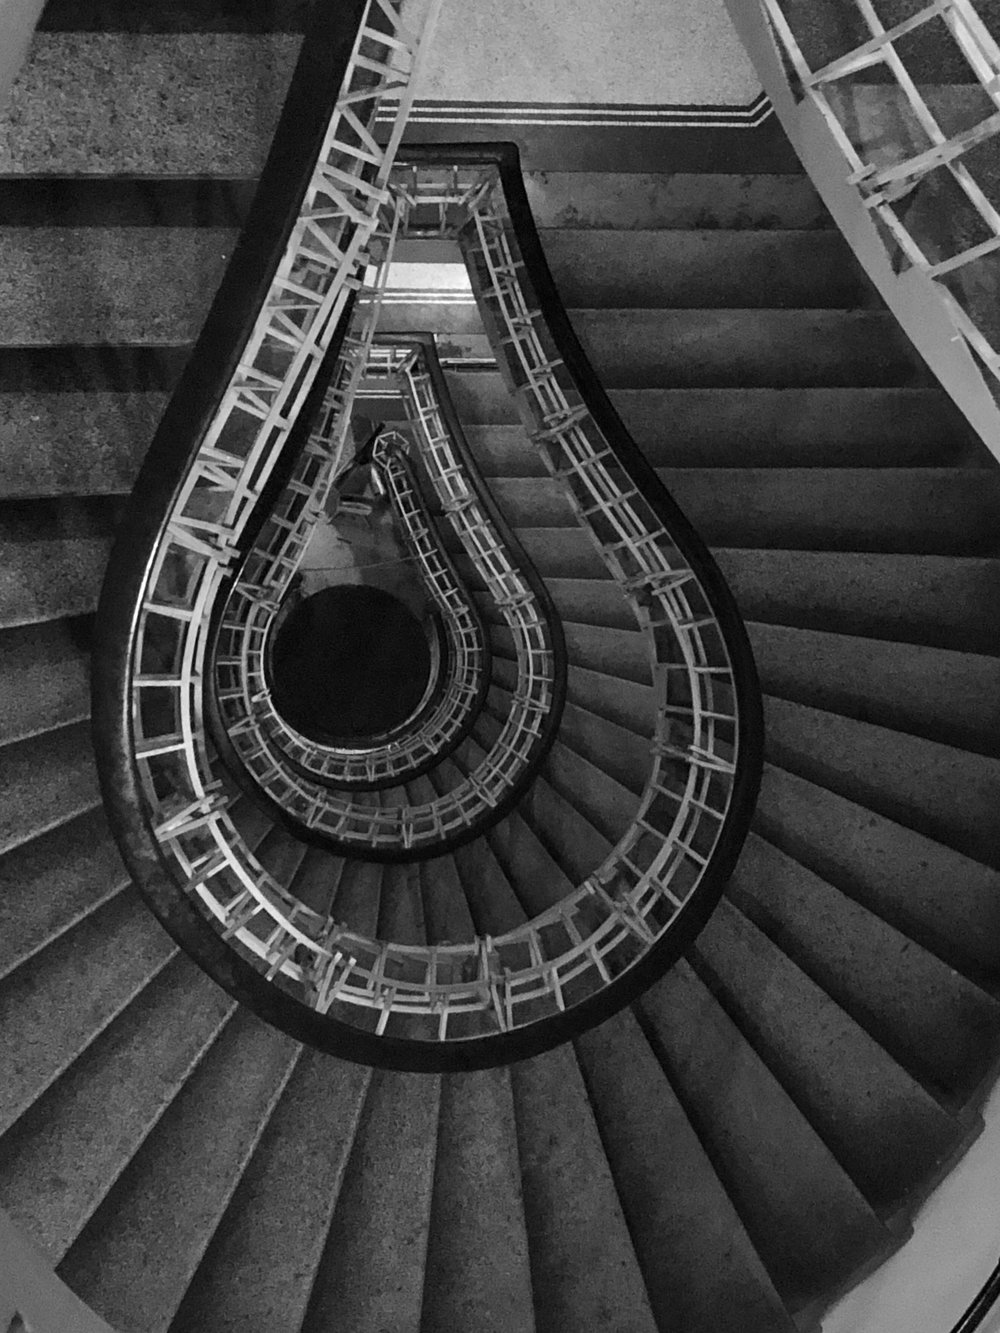 The famous stairway in Prague's Cubism Museum at the House of the Black Madonna. ©Bobby Magill